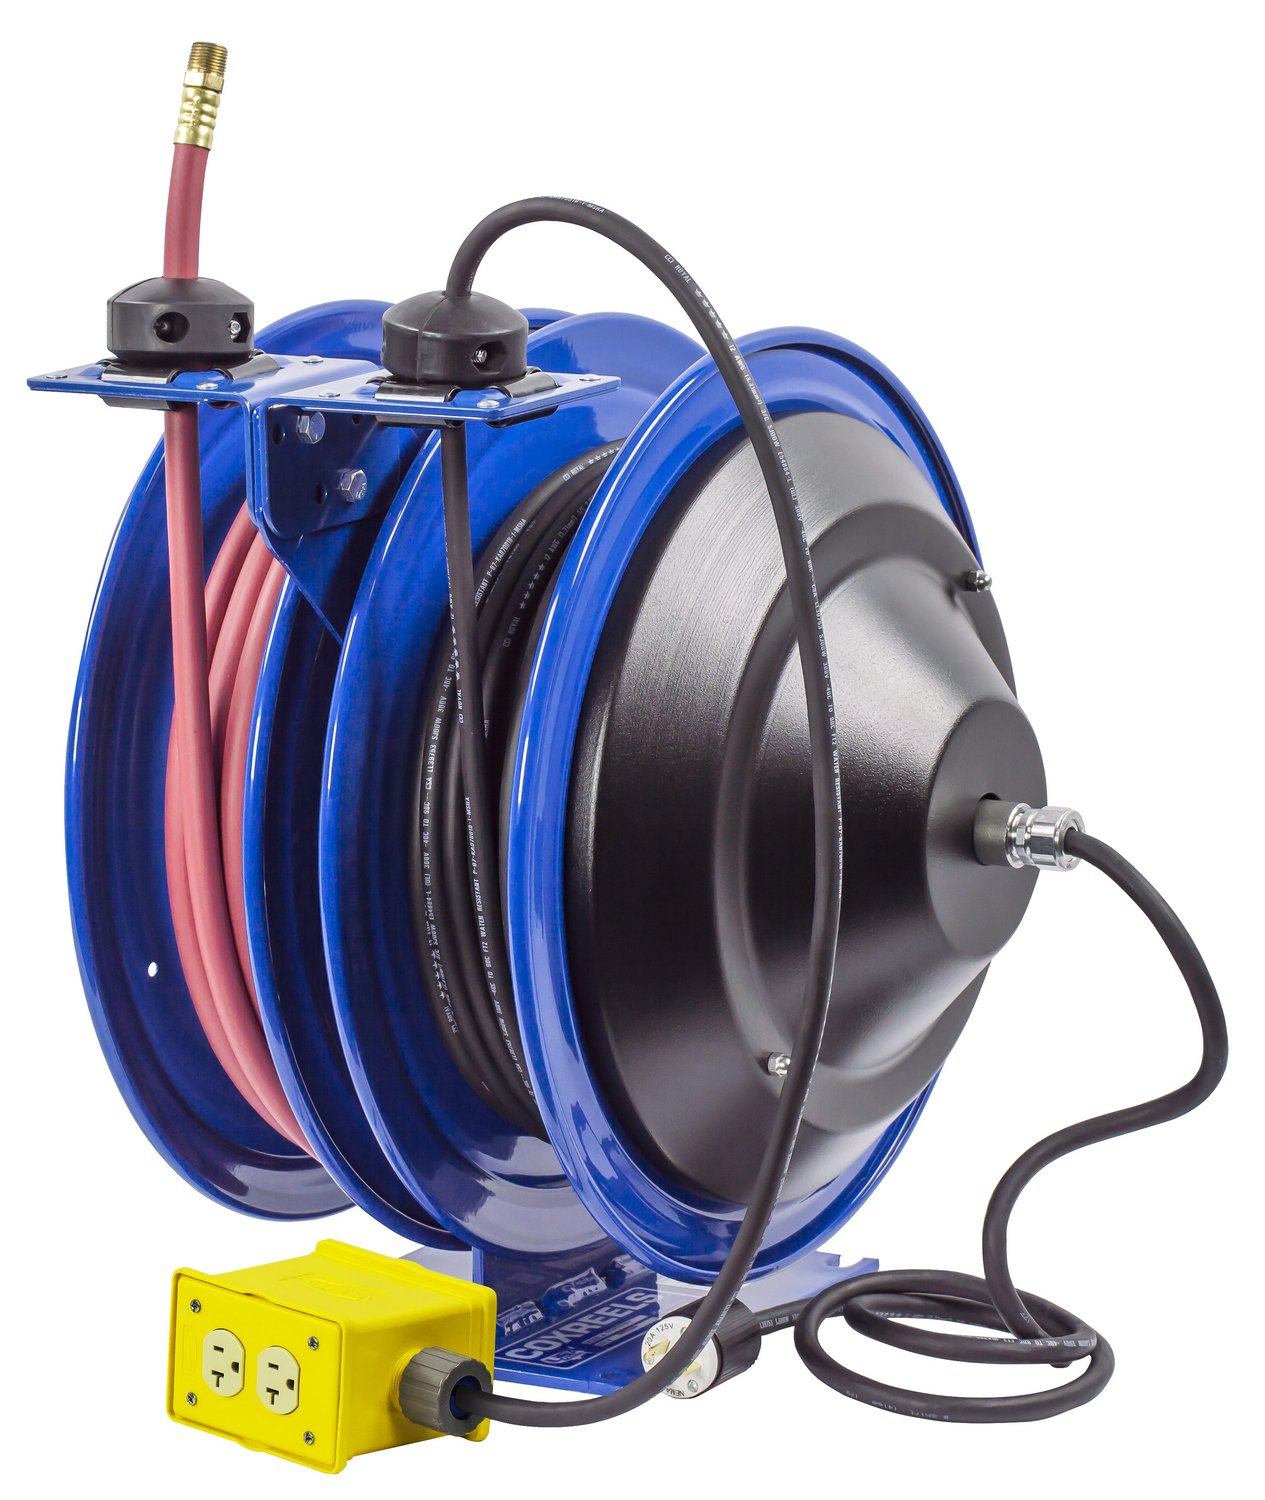 Coxreels C-L350-5012-B Combo Air and Electric Hose Reel with Quad Outlet Attachment, 3/8'' Hose ID, 50' Length by Coxreels (Image #5)